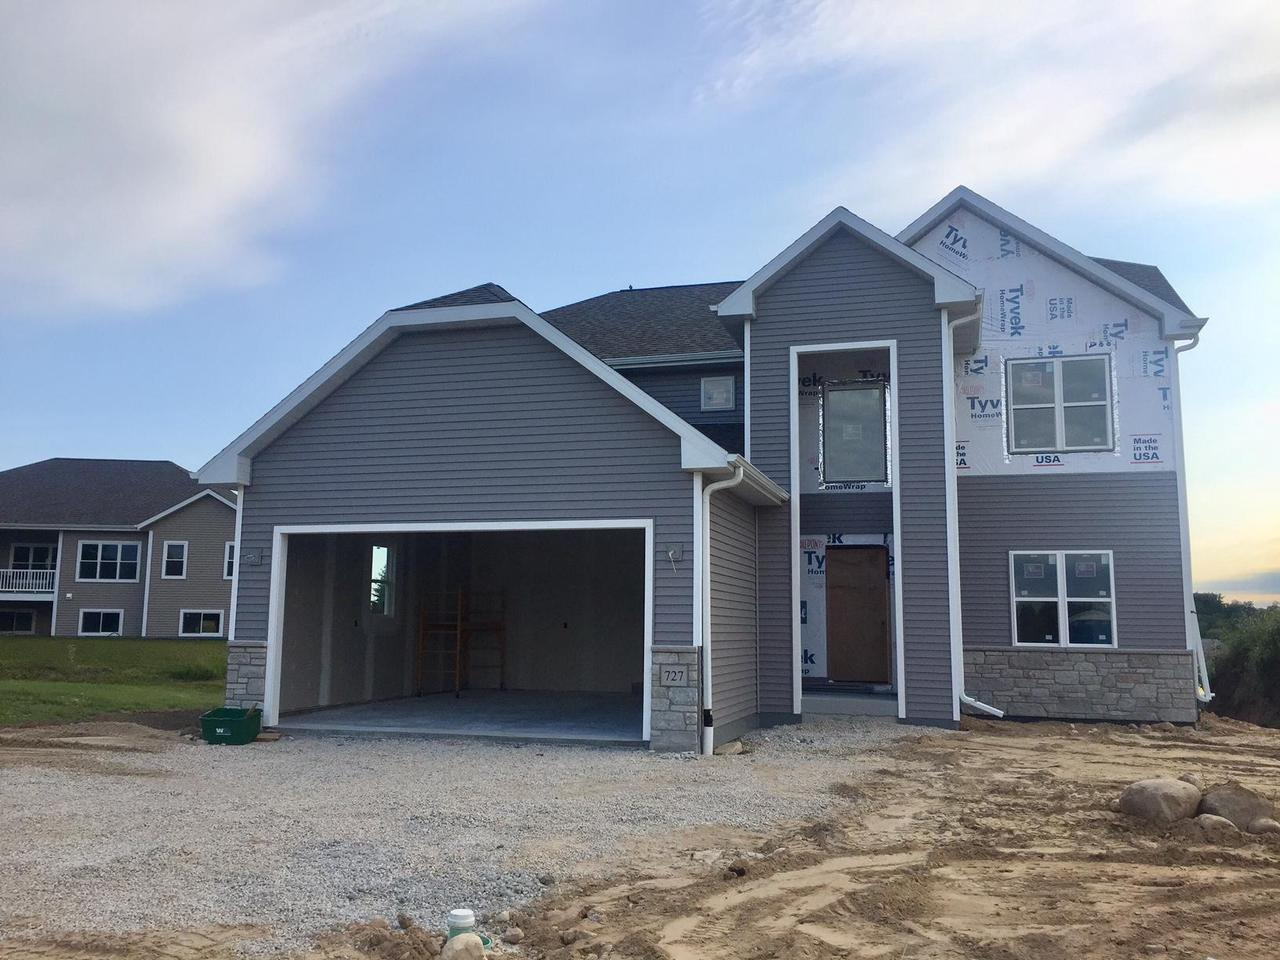 Planned to be completed by the end of 2019, this stunning two story 3 BR, 3 BA home will not disappoint!  To be finished with qualify custom cabinets, granite counters, luxury SWFs ,  and built-in sound system are just a few of the many upgrades.  Home features 9 ft ceilings on the main level, grand 2 story foyer, formal DR, huge LR with open kitchen with large center island and walk -in pantry.  Upstairs has MBR w/gorgeous MBA and WIC.  Lower level is partially exposed with large windows.  Built with 2x6 construction, fully insulated and drywalled garage, R50 insulation in the home  and much more.  Be the first to own this quality built home located in a cul-de-sac with great views and close to schools and shopping.  Taxes are estimated.